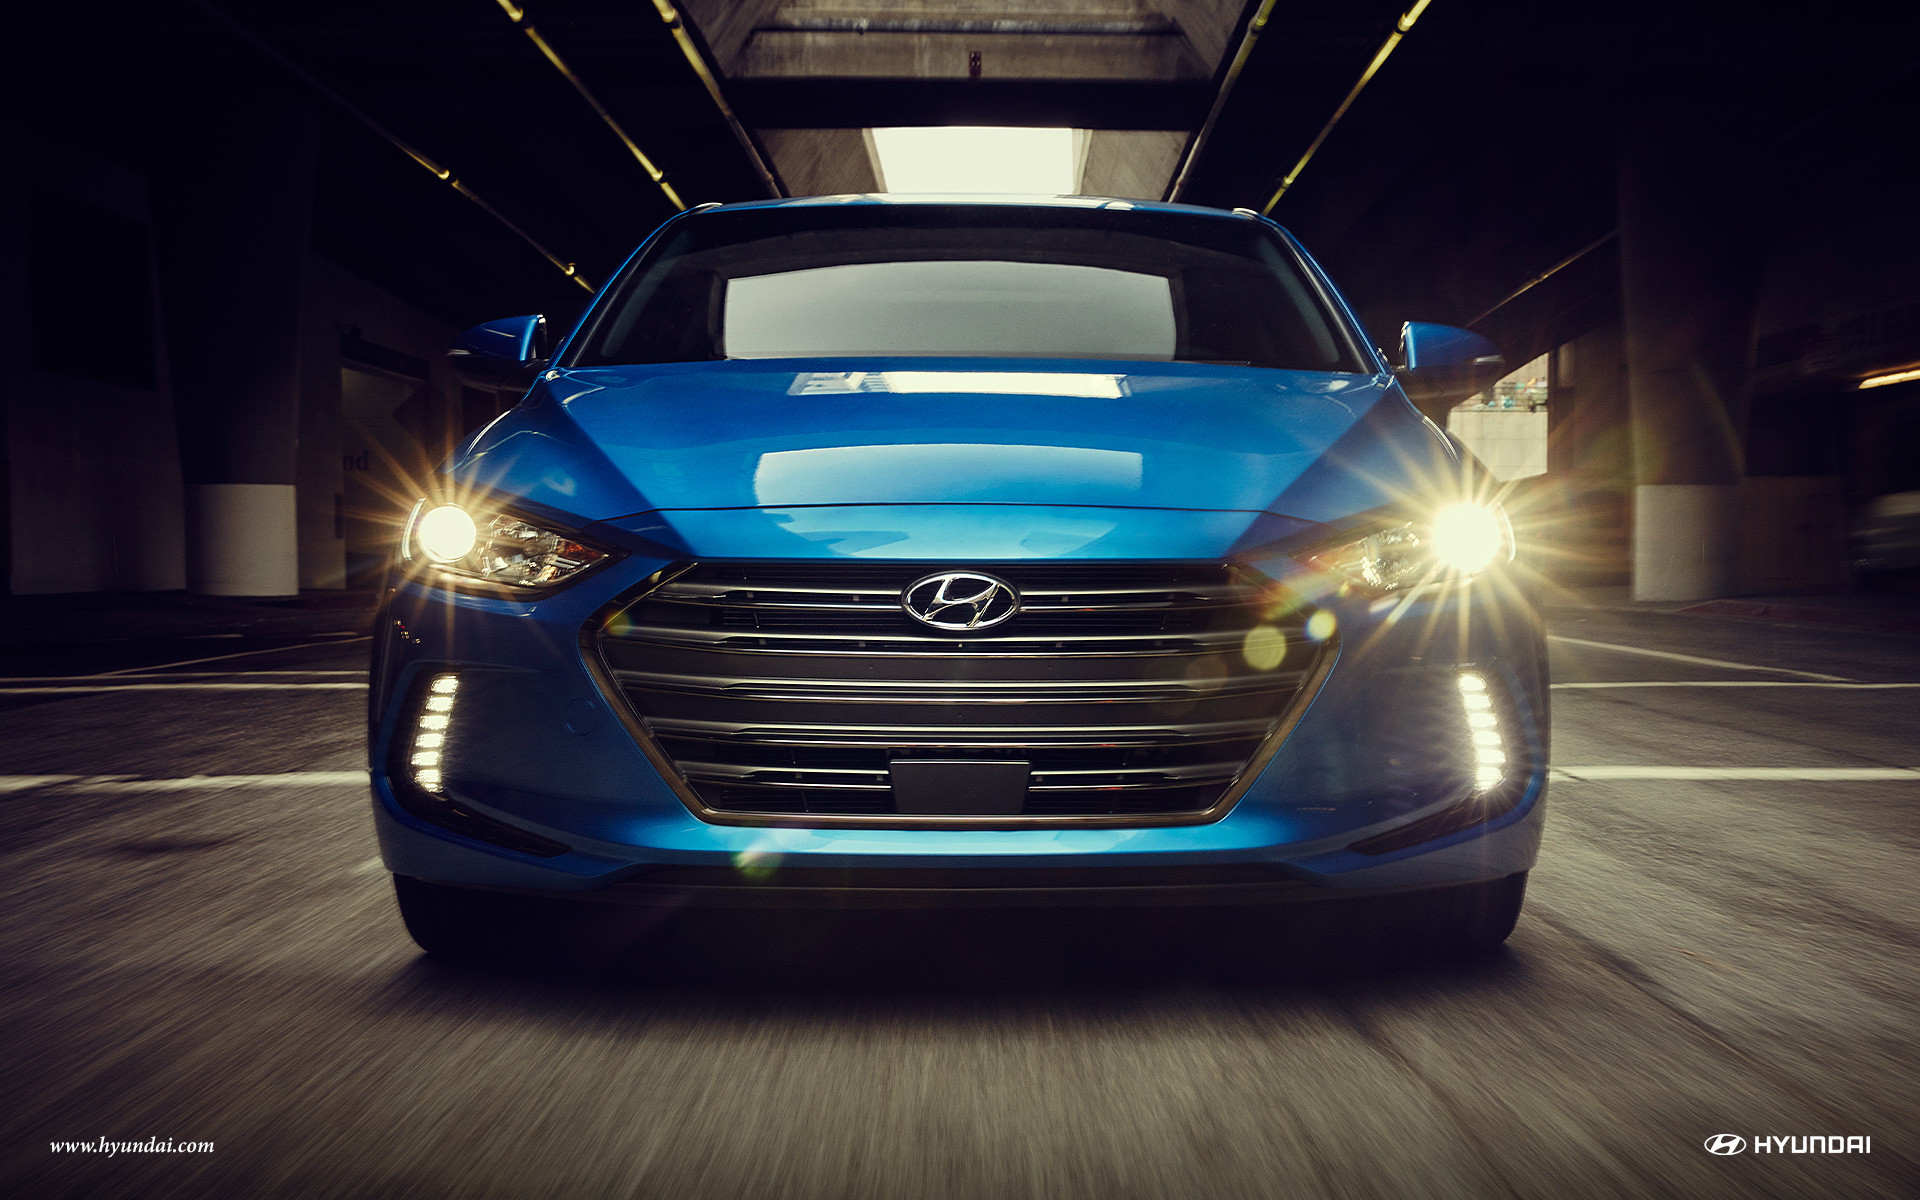 2016 Hyundai Elantra in Electric Blue